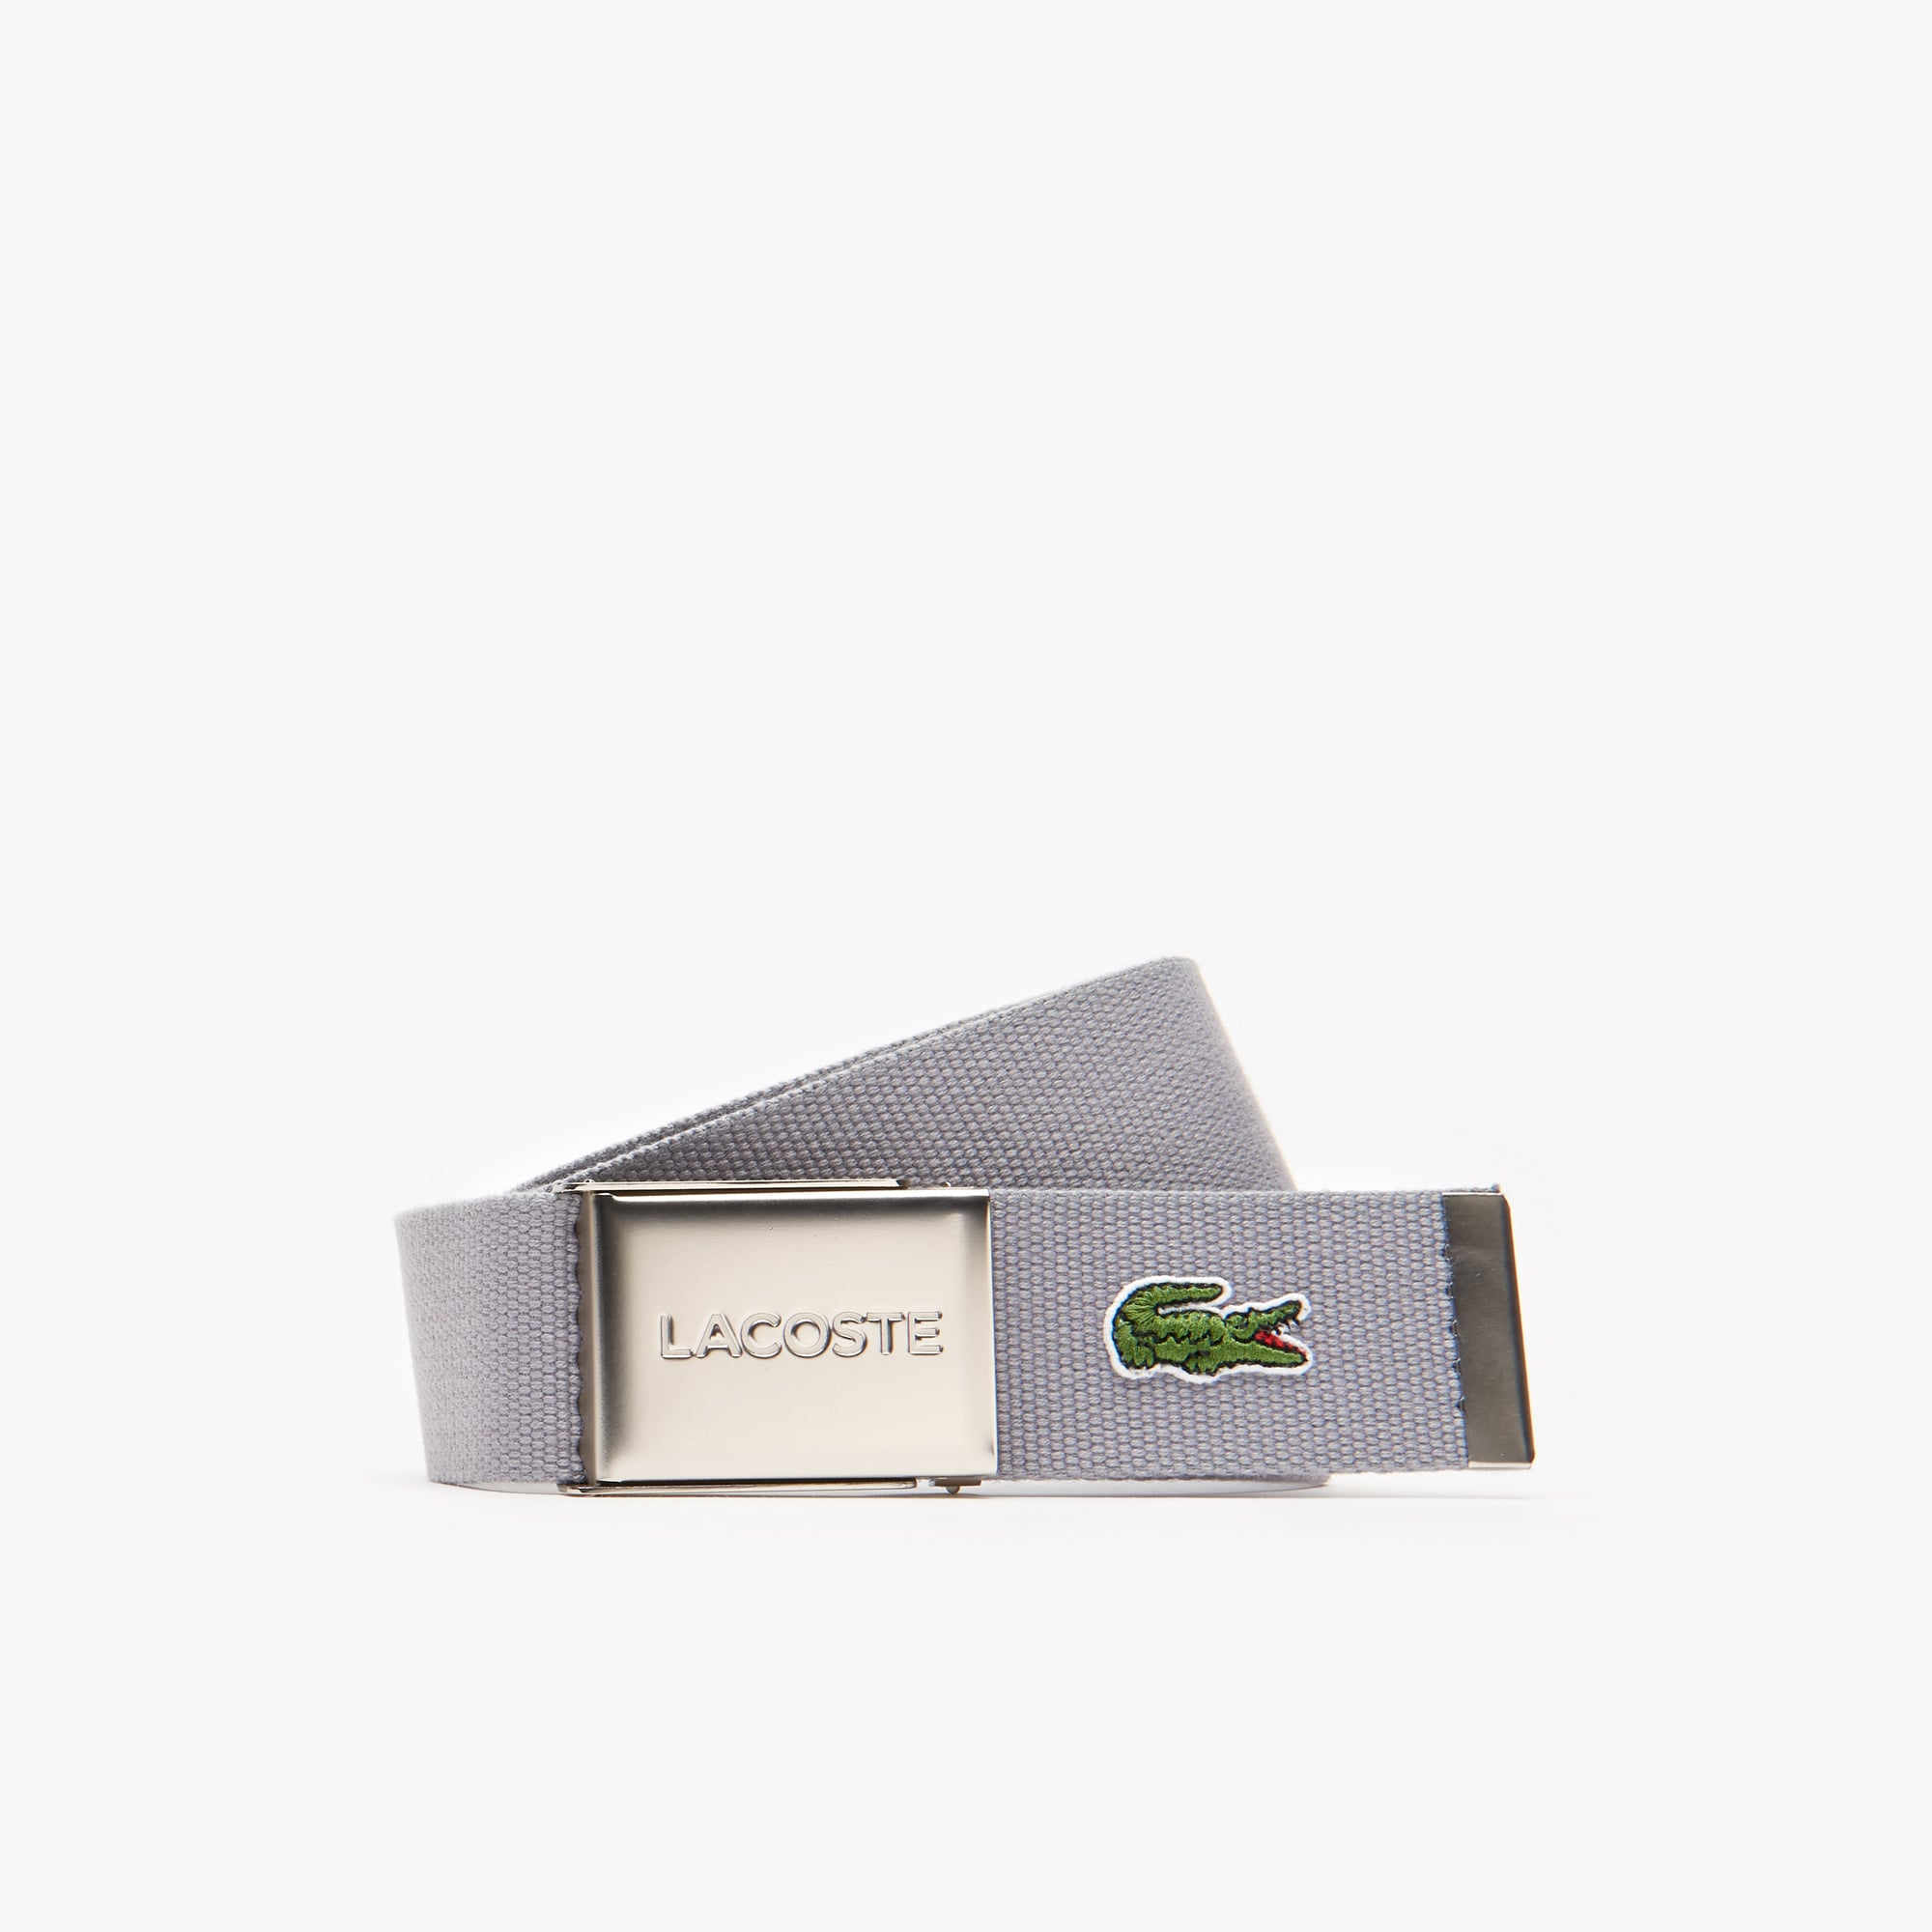 Ceinture sangle boucle gravée Lacoste Édition Made in France